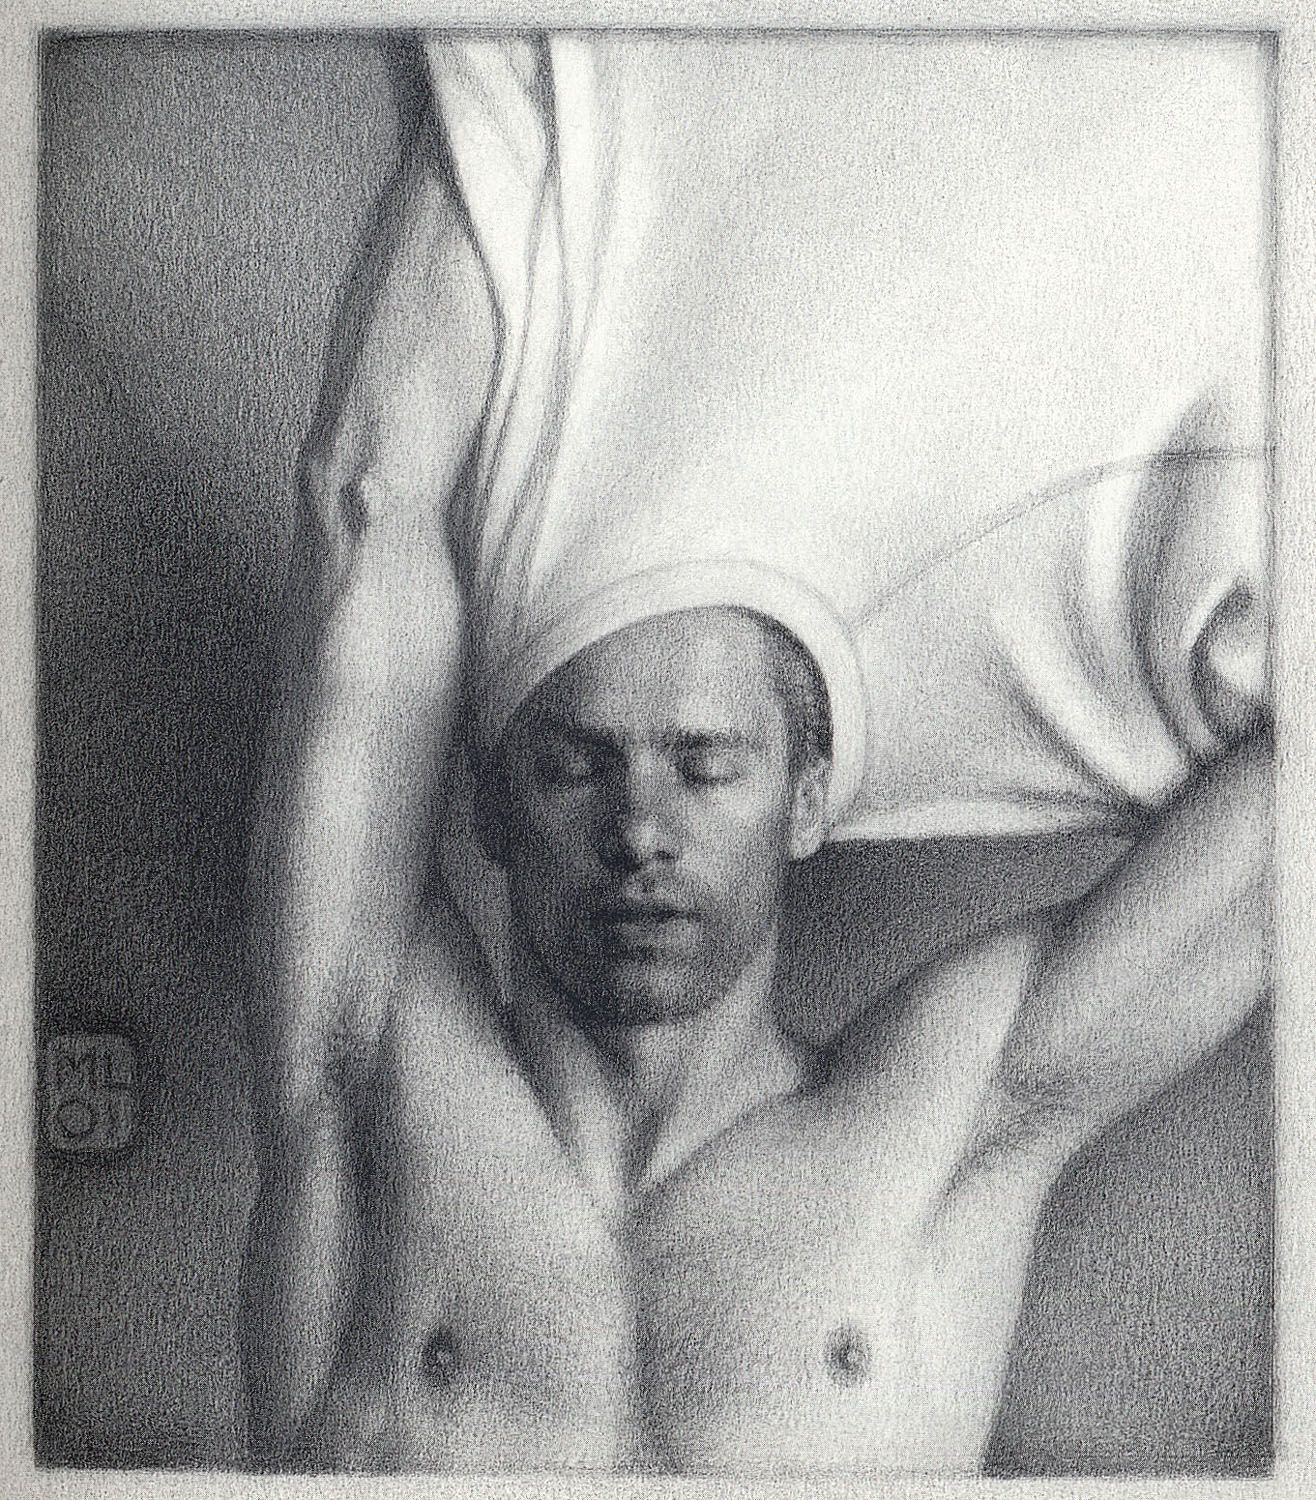 Michael Leonard, Taking Off (SOLD), 2002, graphite pencil on paper, 8 3/8 x 7 1/4 inches